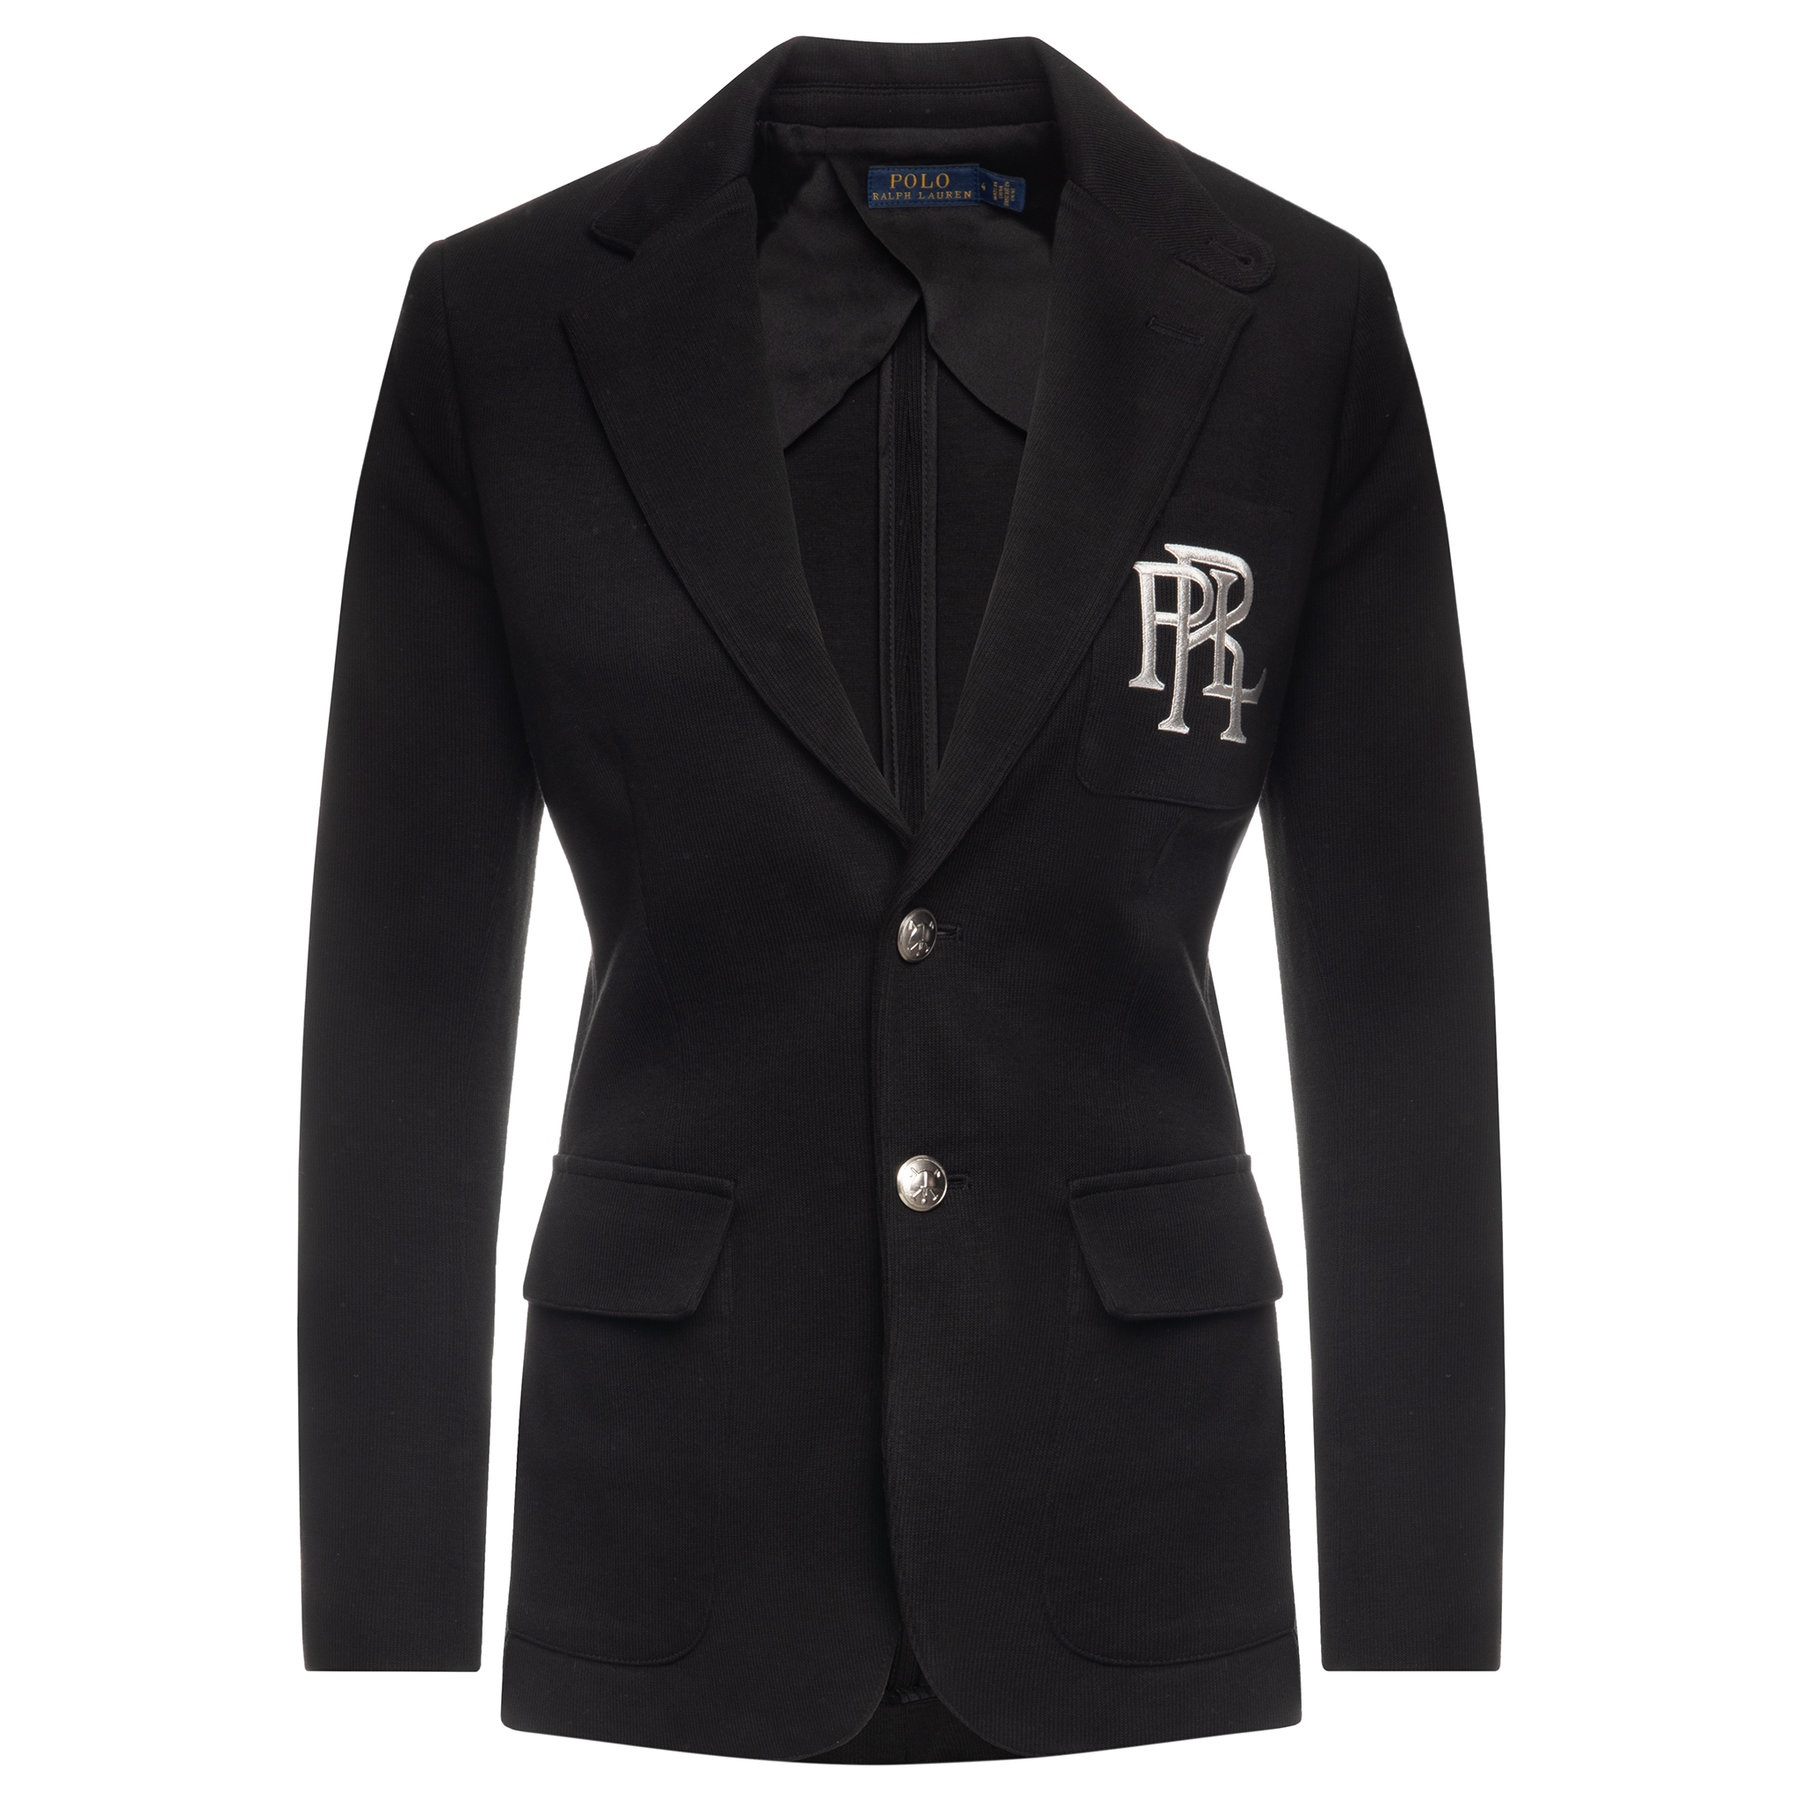 Polo Ralph Lauren Cottons EMBROIDERED SINGLE BREASTED BLAZER